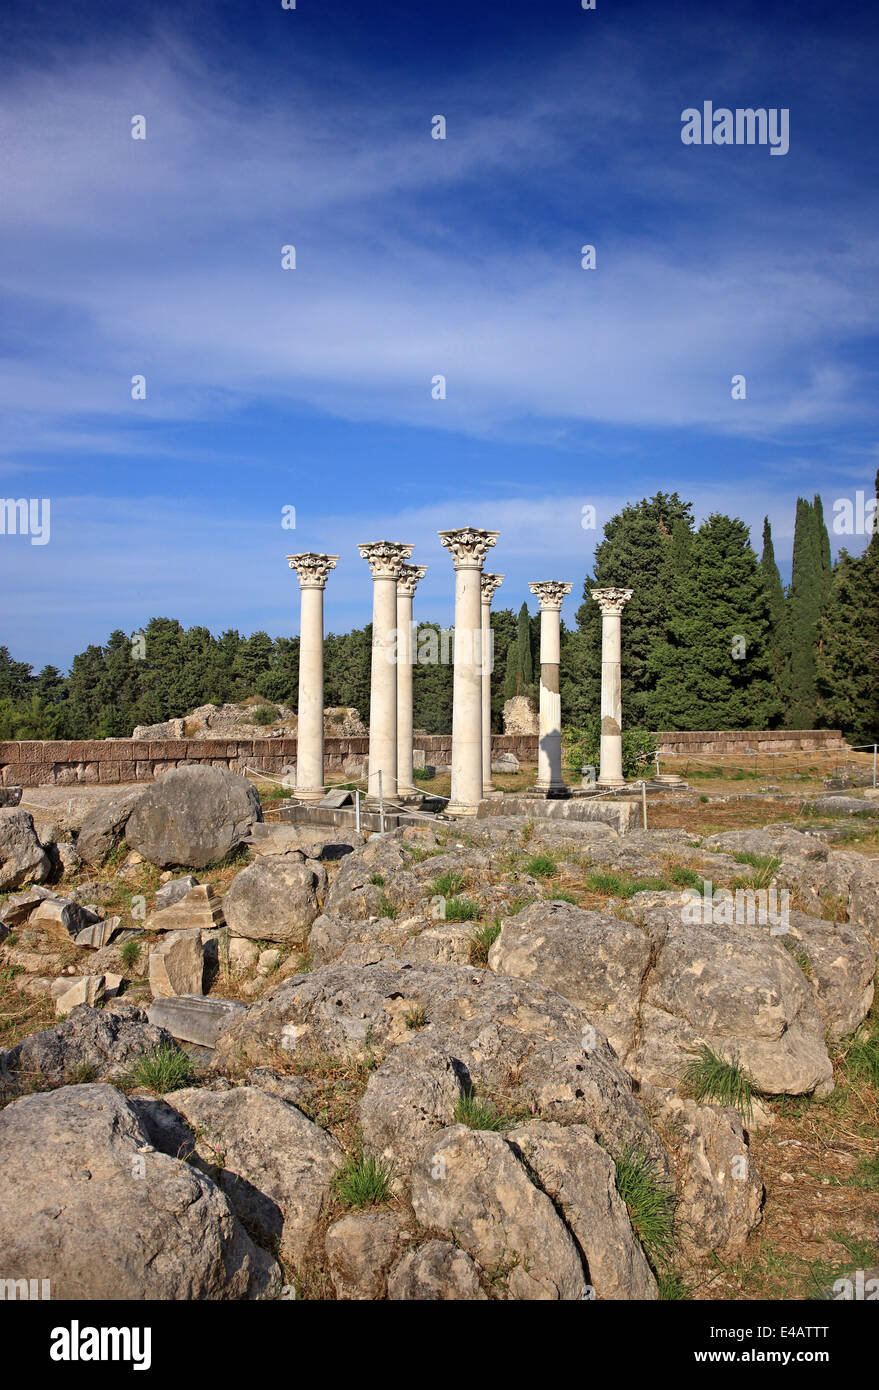 Roman temple at the archaeological site of the Asklepieion, Kos island, Dodecanese, Aegean sea, Greece. - Stock Image